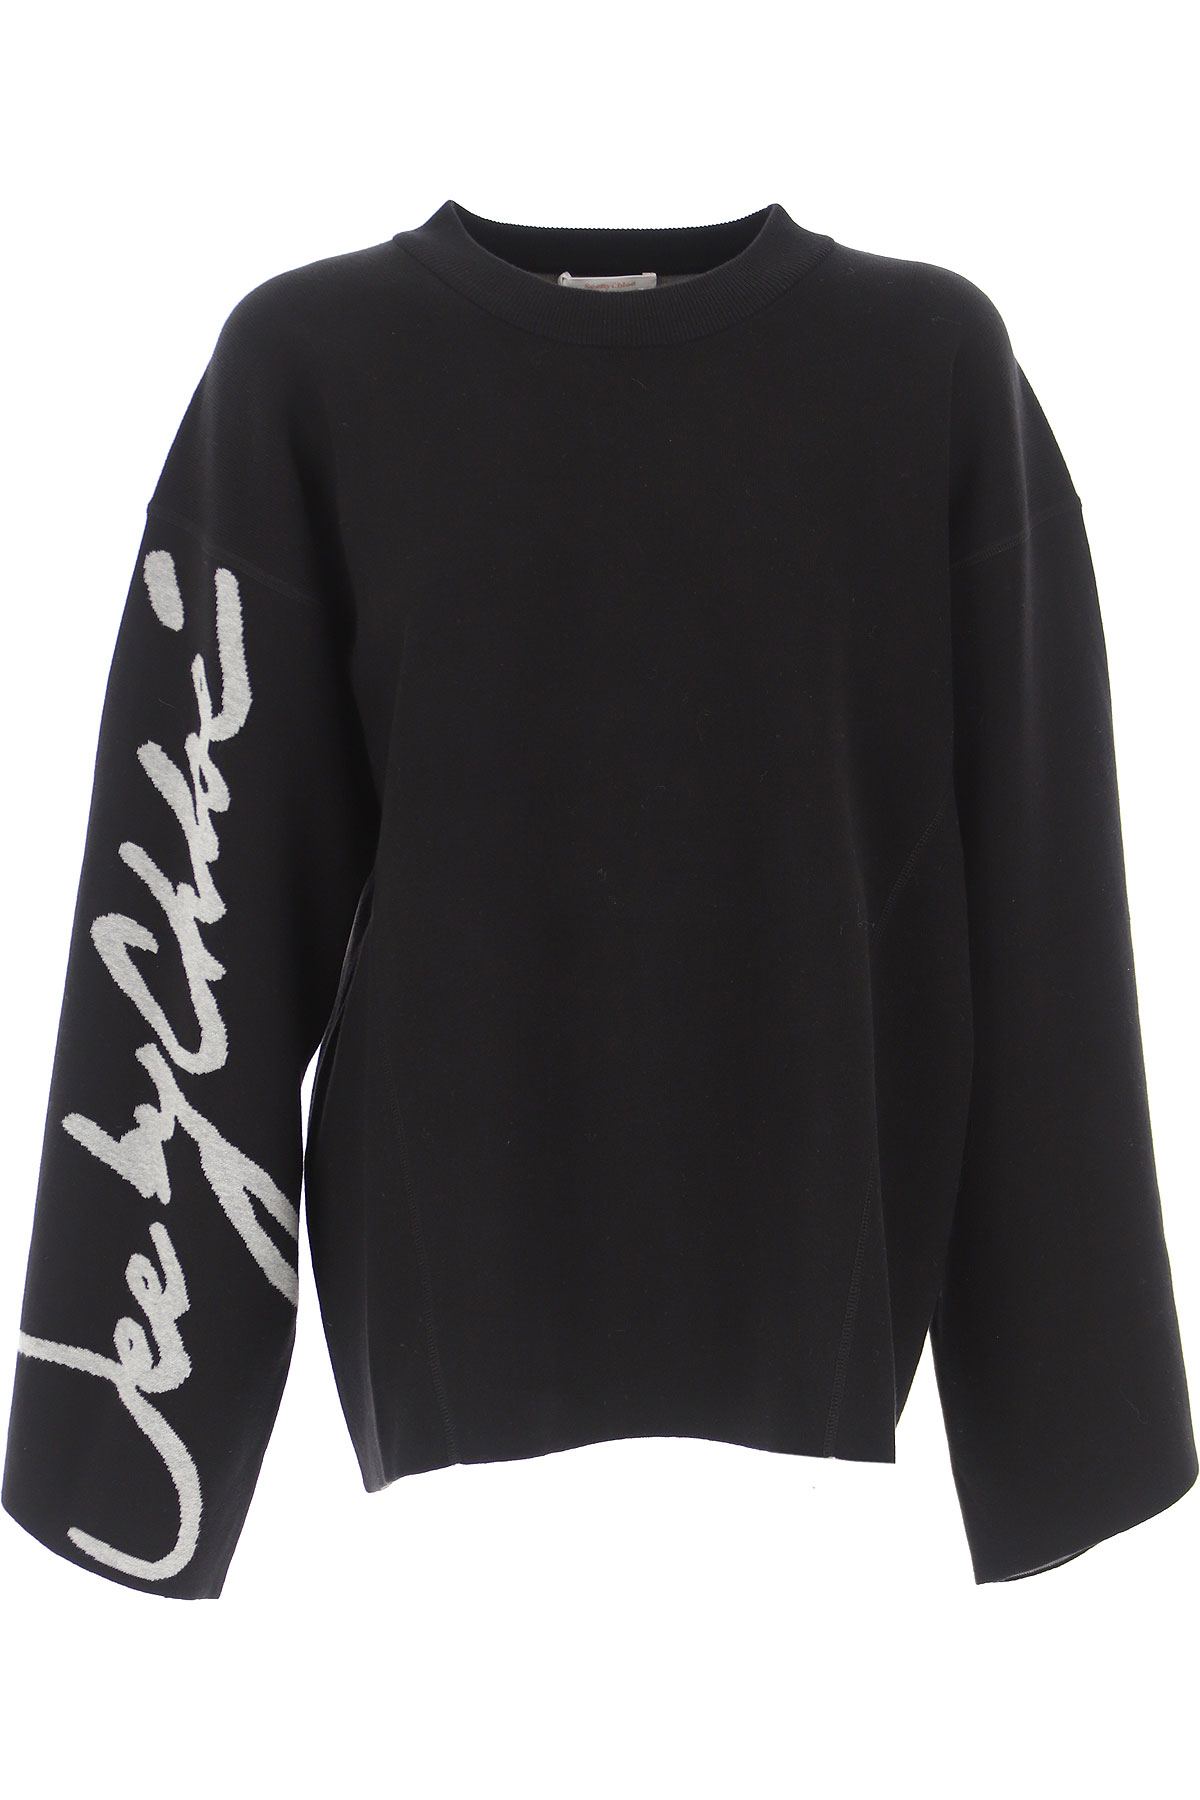 See By Chloe Sweater for Women Jumper, Black, Cotton, 2019, 2 4 6